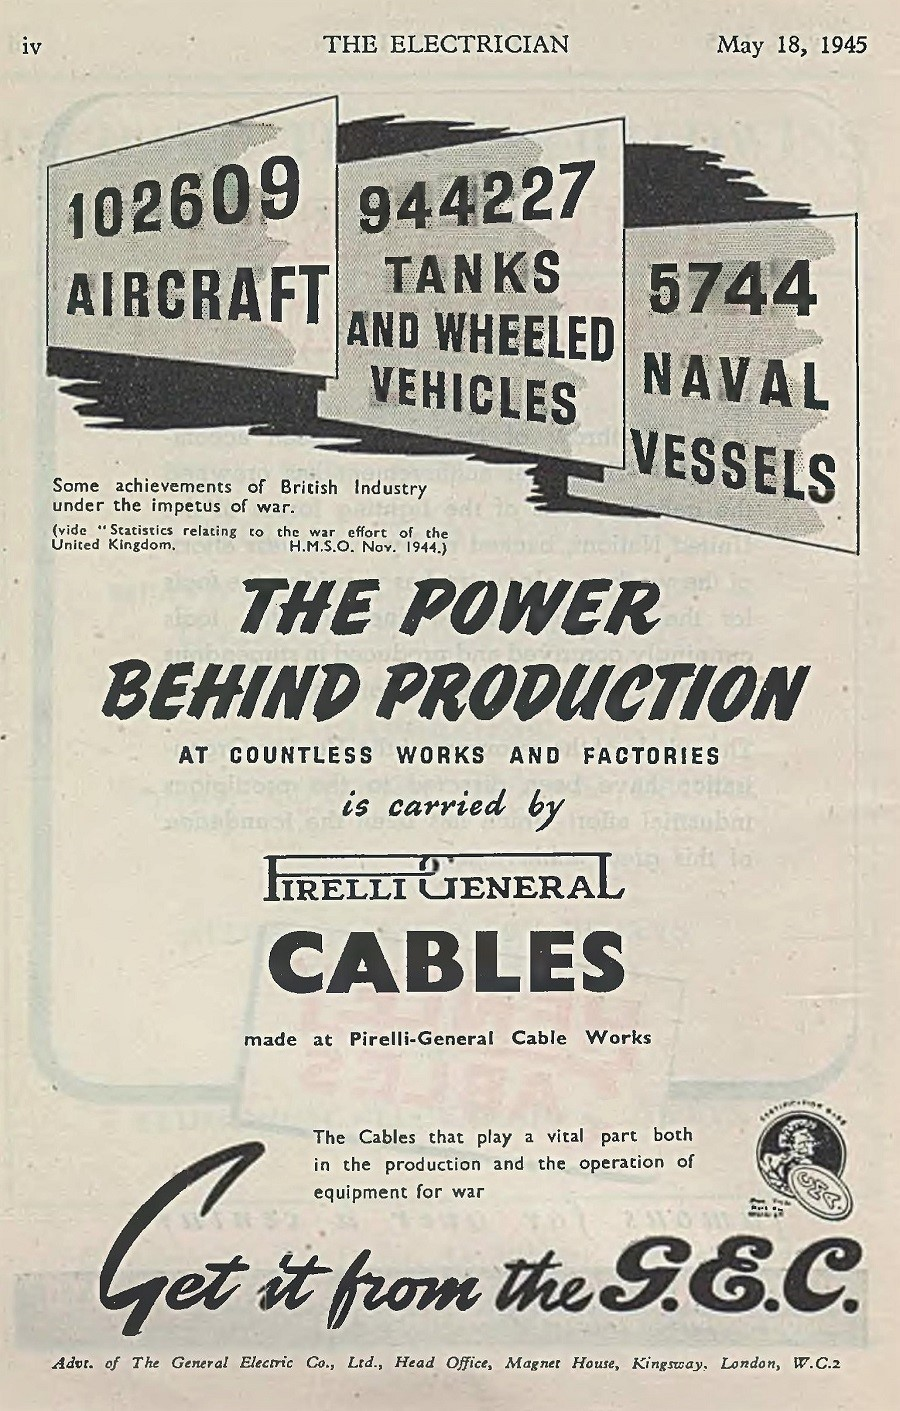 Pirelli-General Cable Works